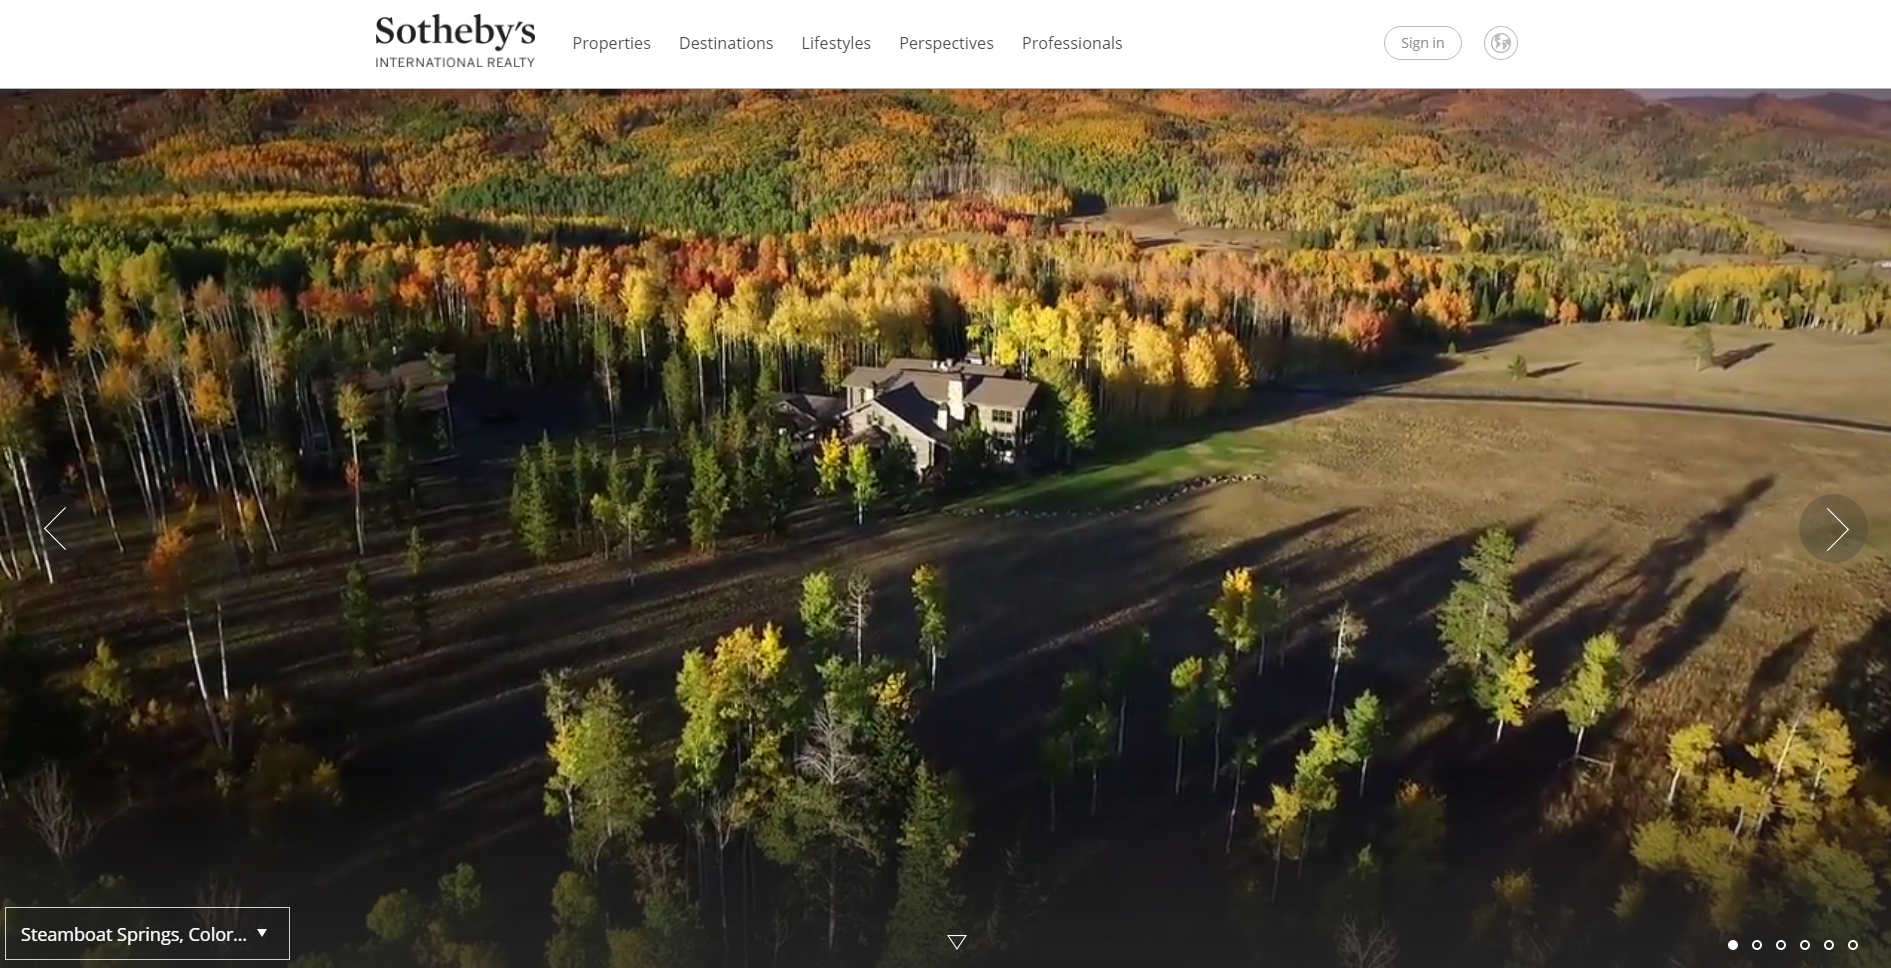 SNOWY MOUNTAIN RANCH VIDEO FEATURED ON SIR.COM HOME PAGE